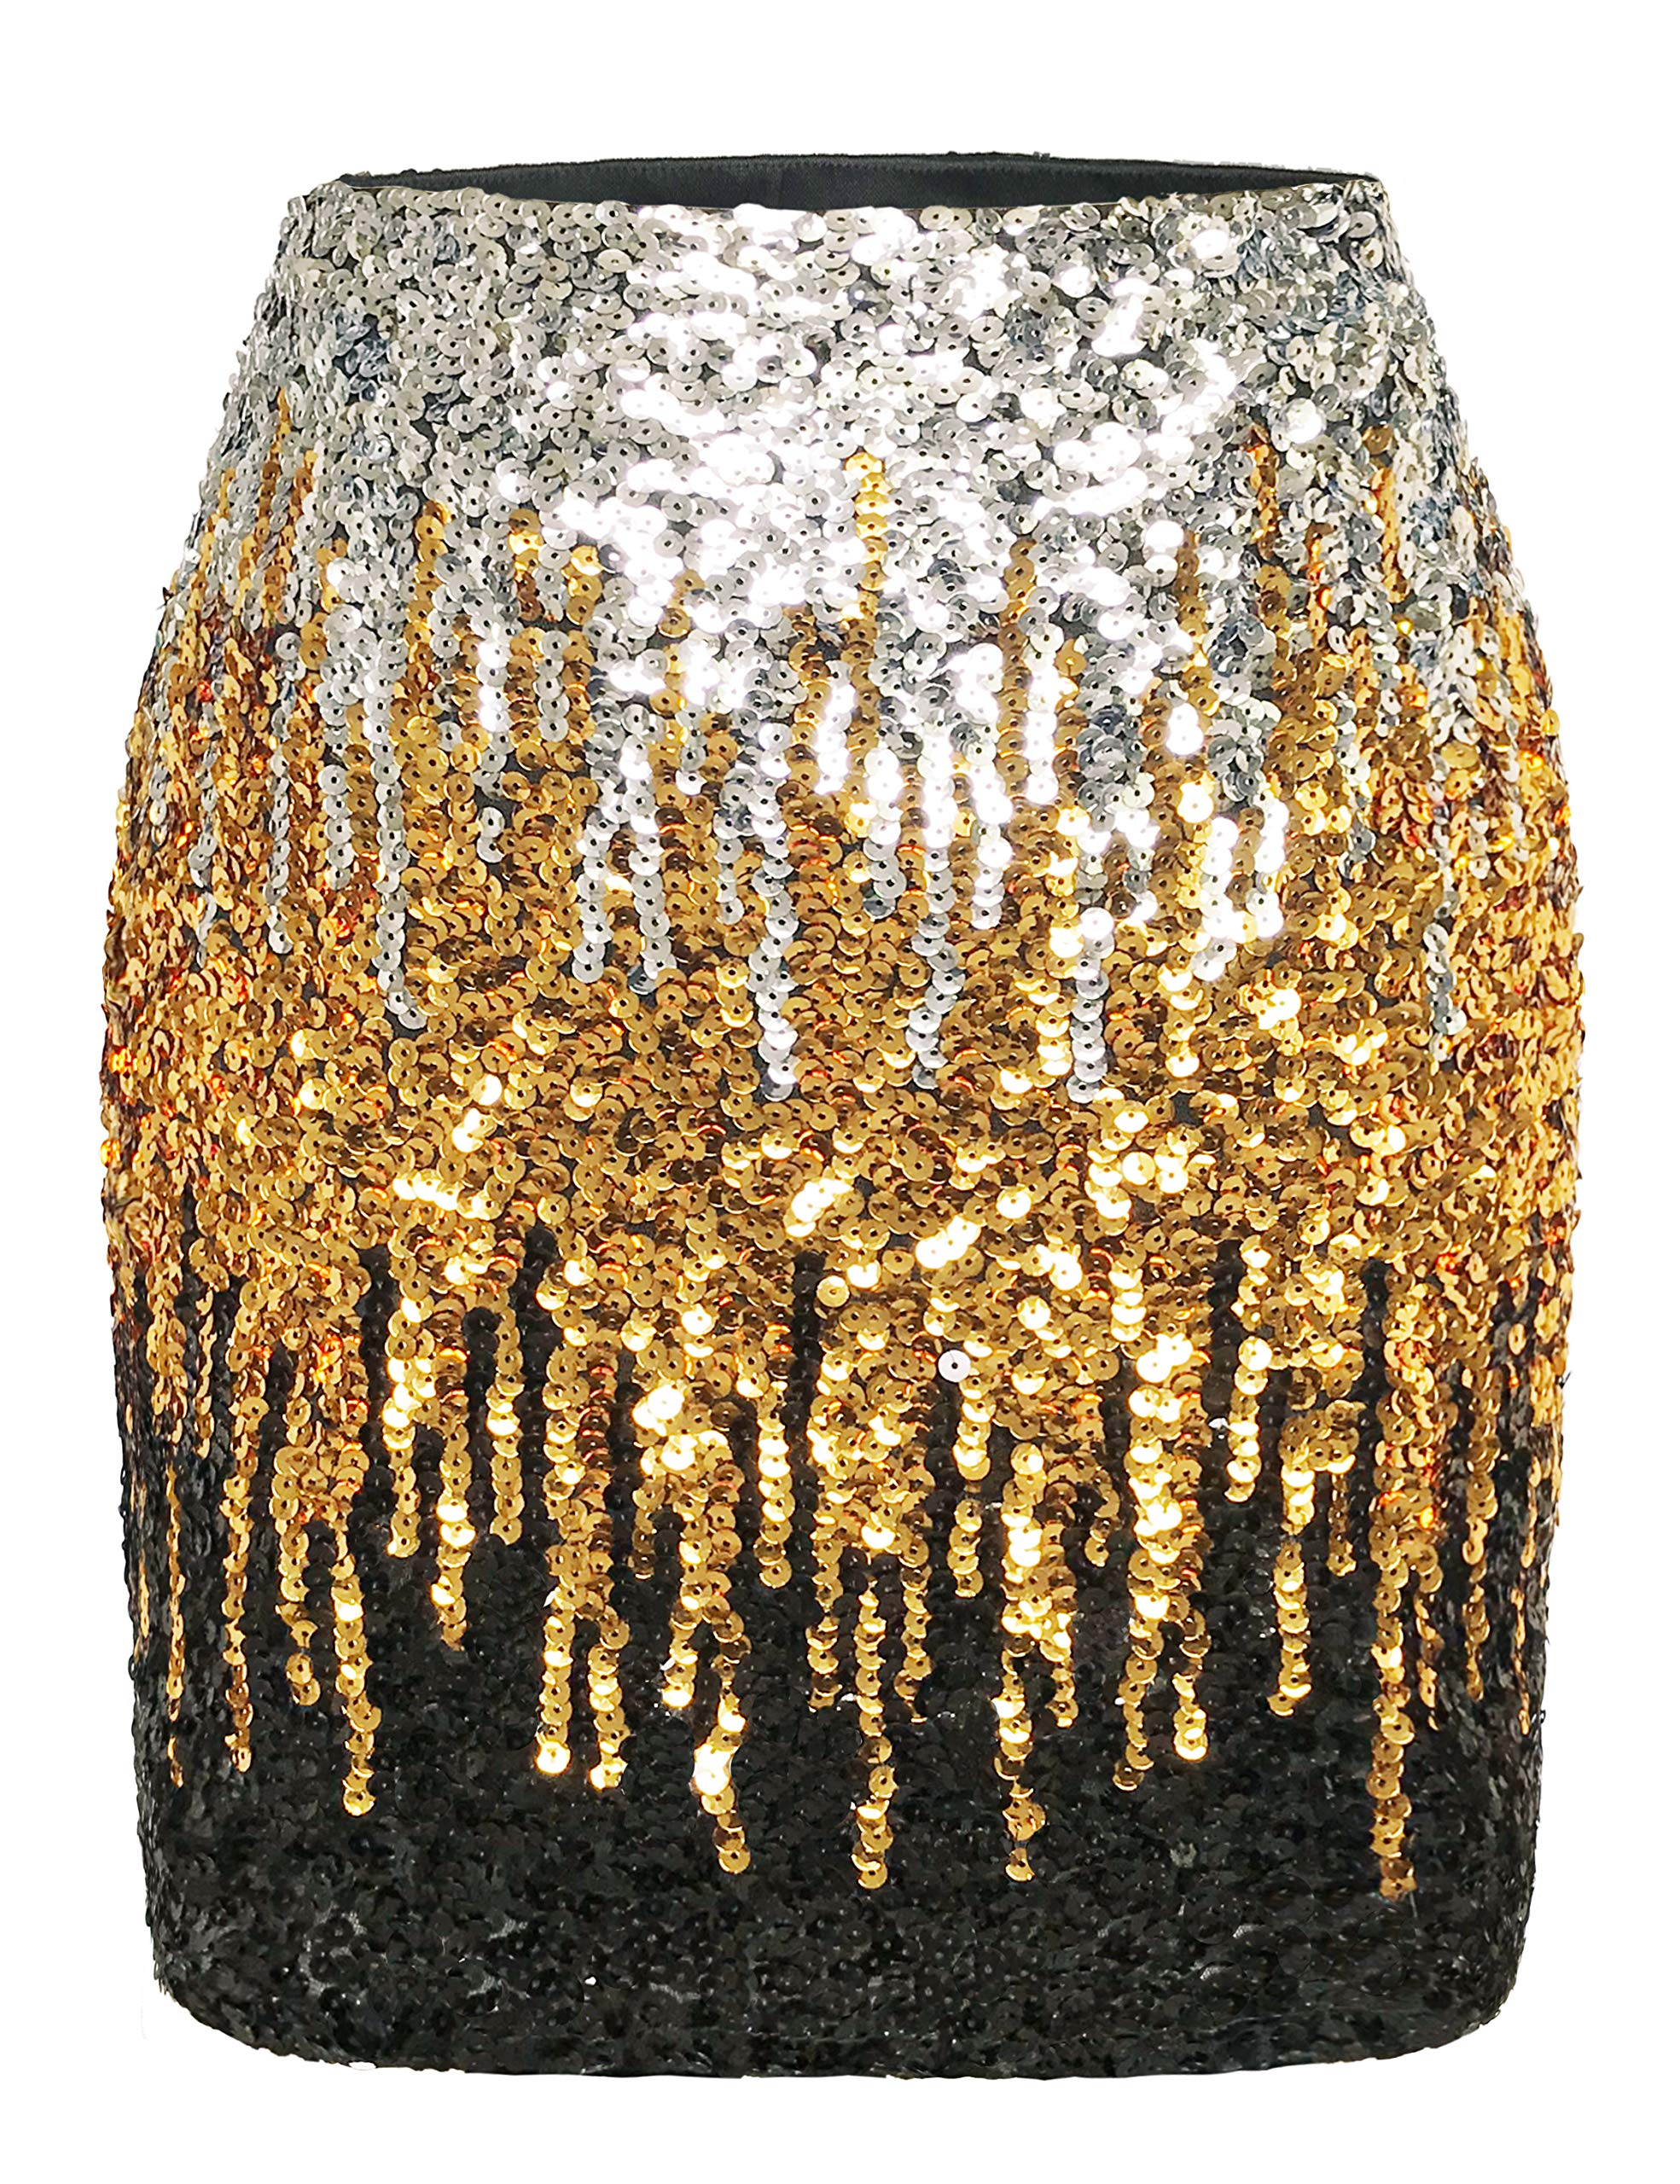 MANER Women's Sequin Skirt Sparkle Stretchy Bodycon Mini Skirts Night Out  Party- Buy Online in Guernsey at guernsey.desertcart.com. ProductId :  165754155.